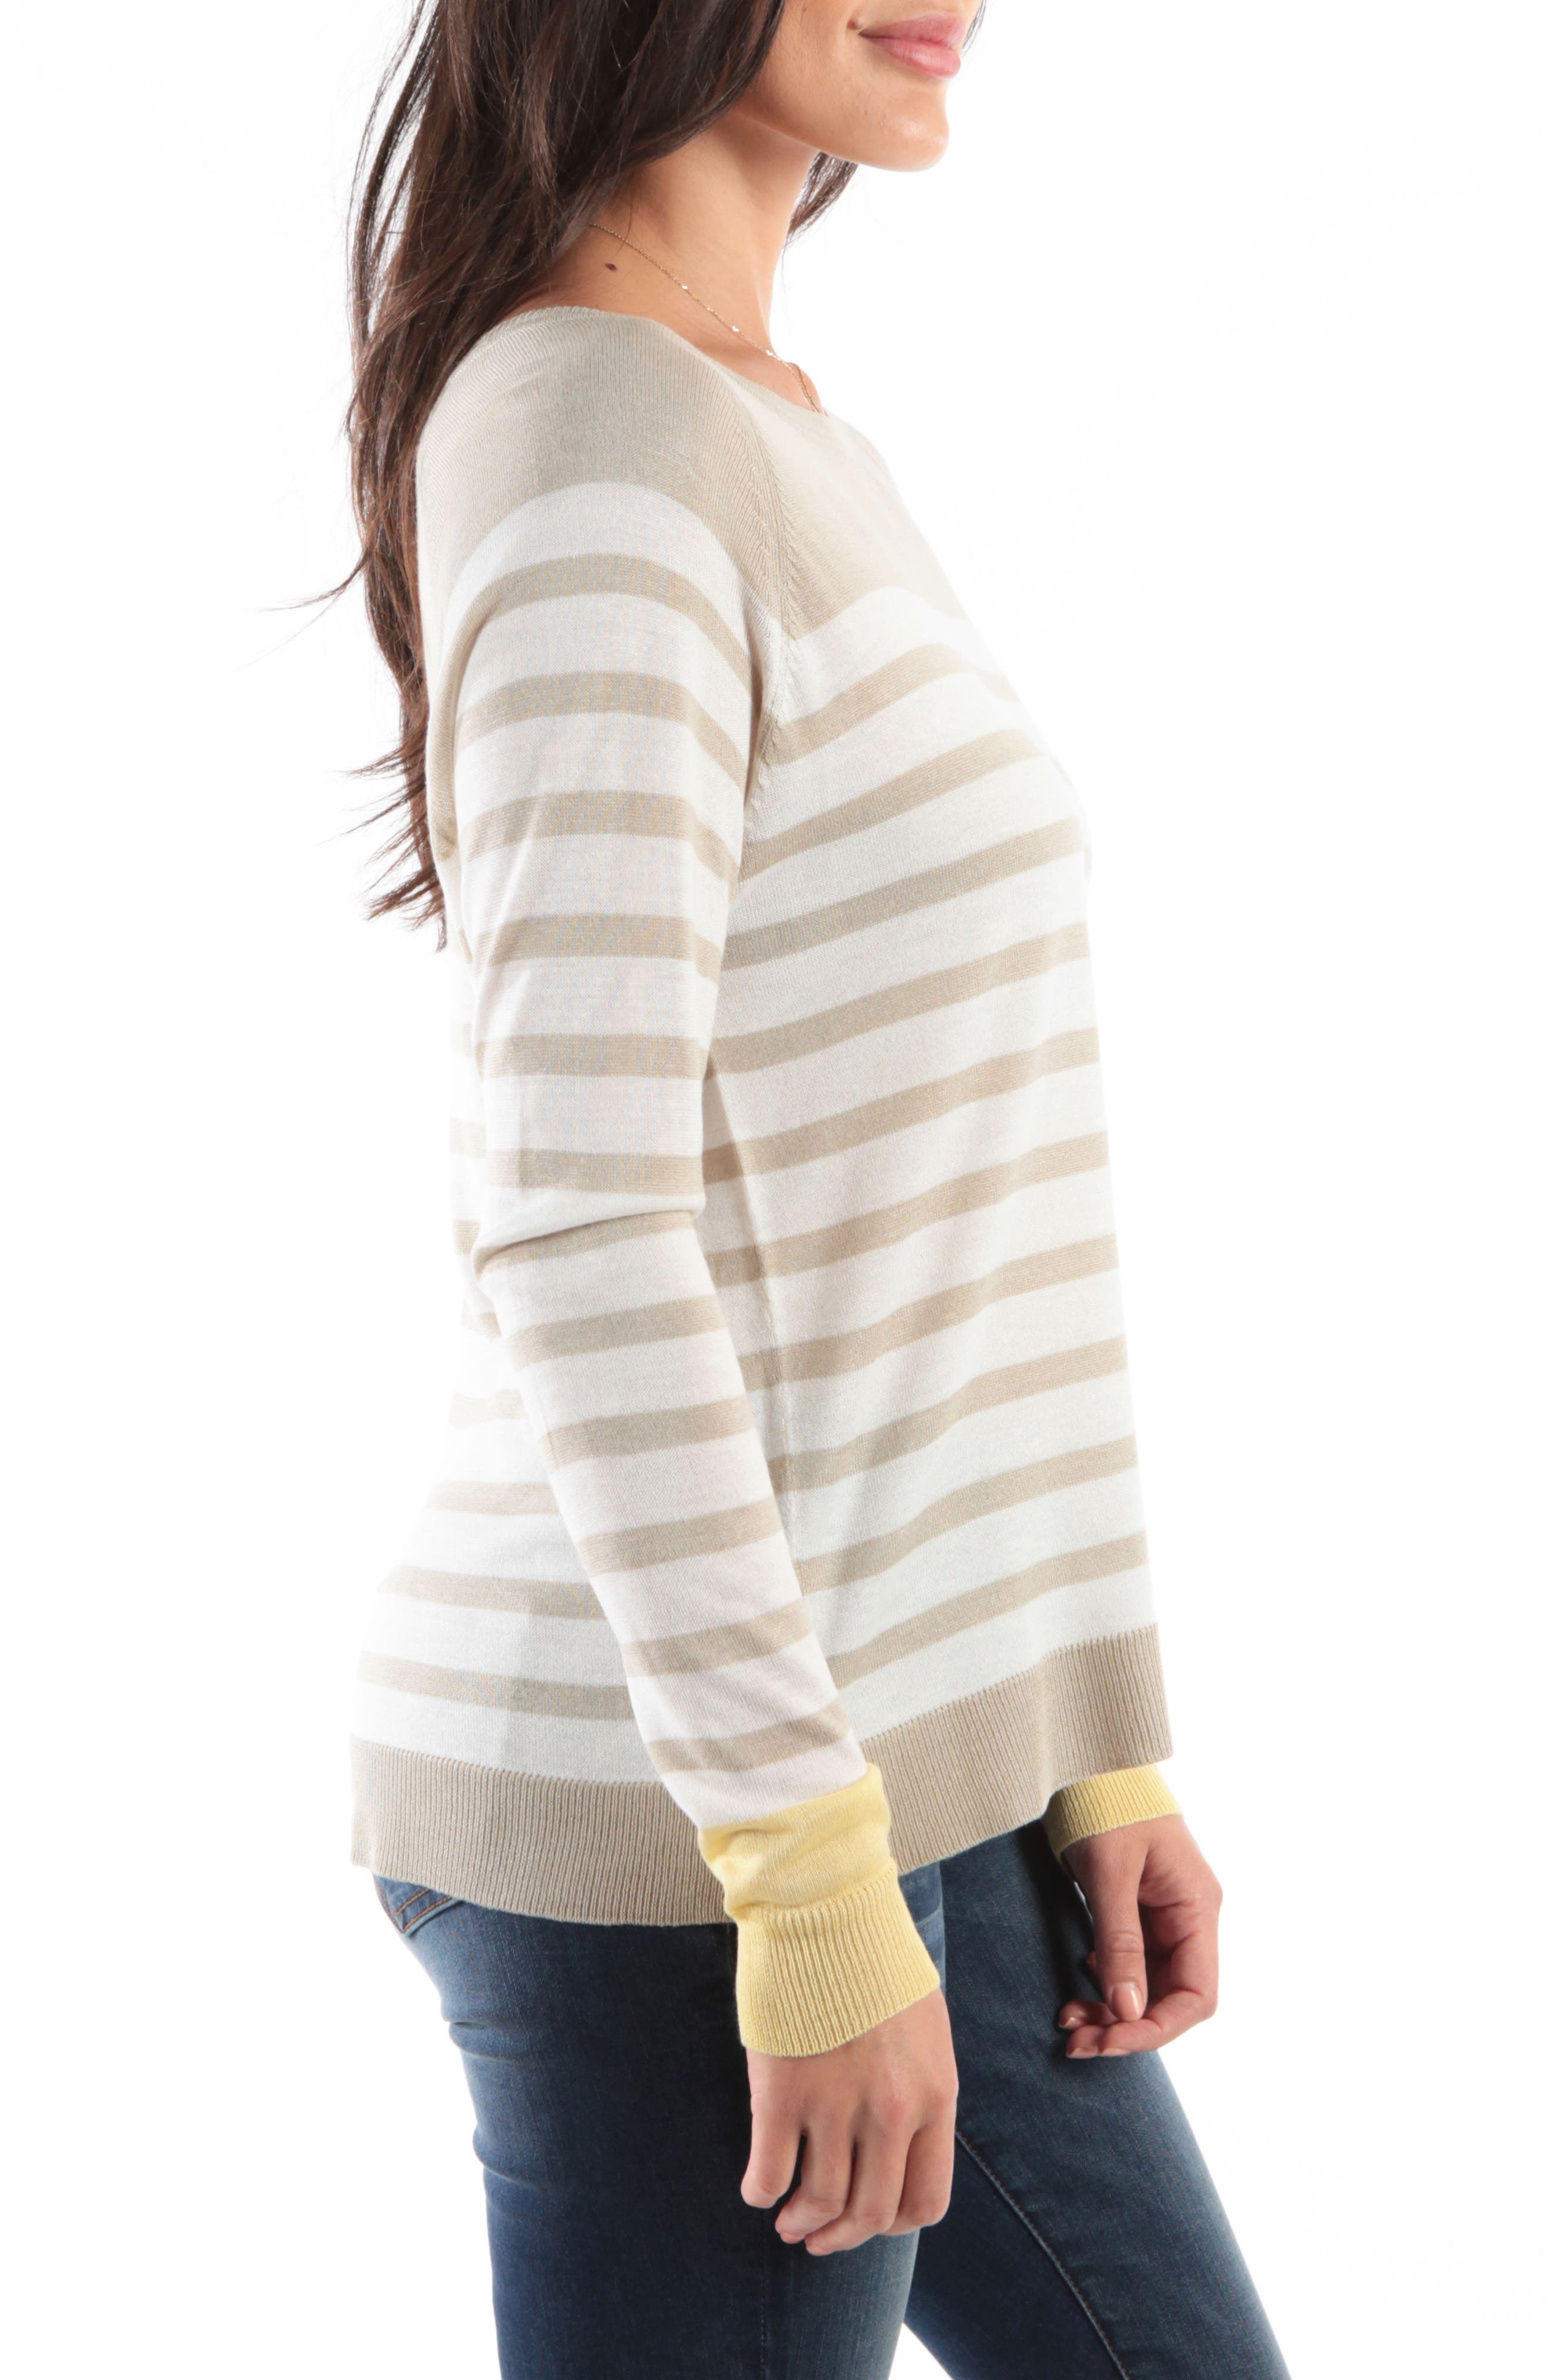 KUT FROM THE KLOTH,                             Bianka Stripe Sweater,                             Alternate thumbnail 3, color,                             OATMEAL/ OFF WHITE